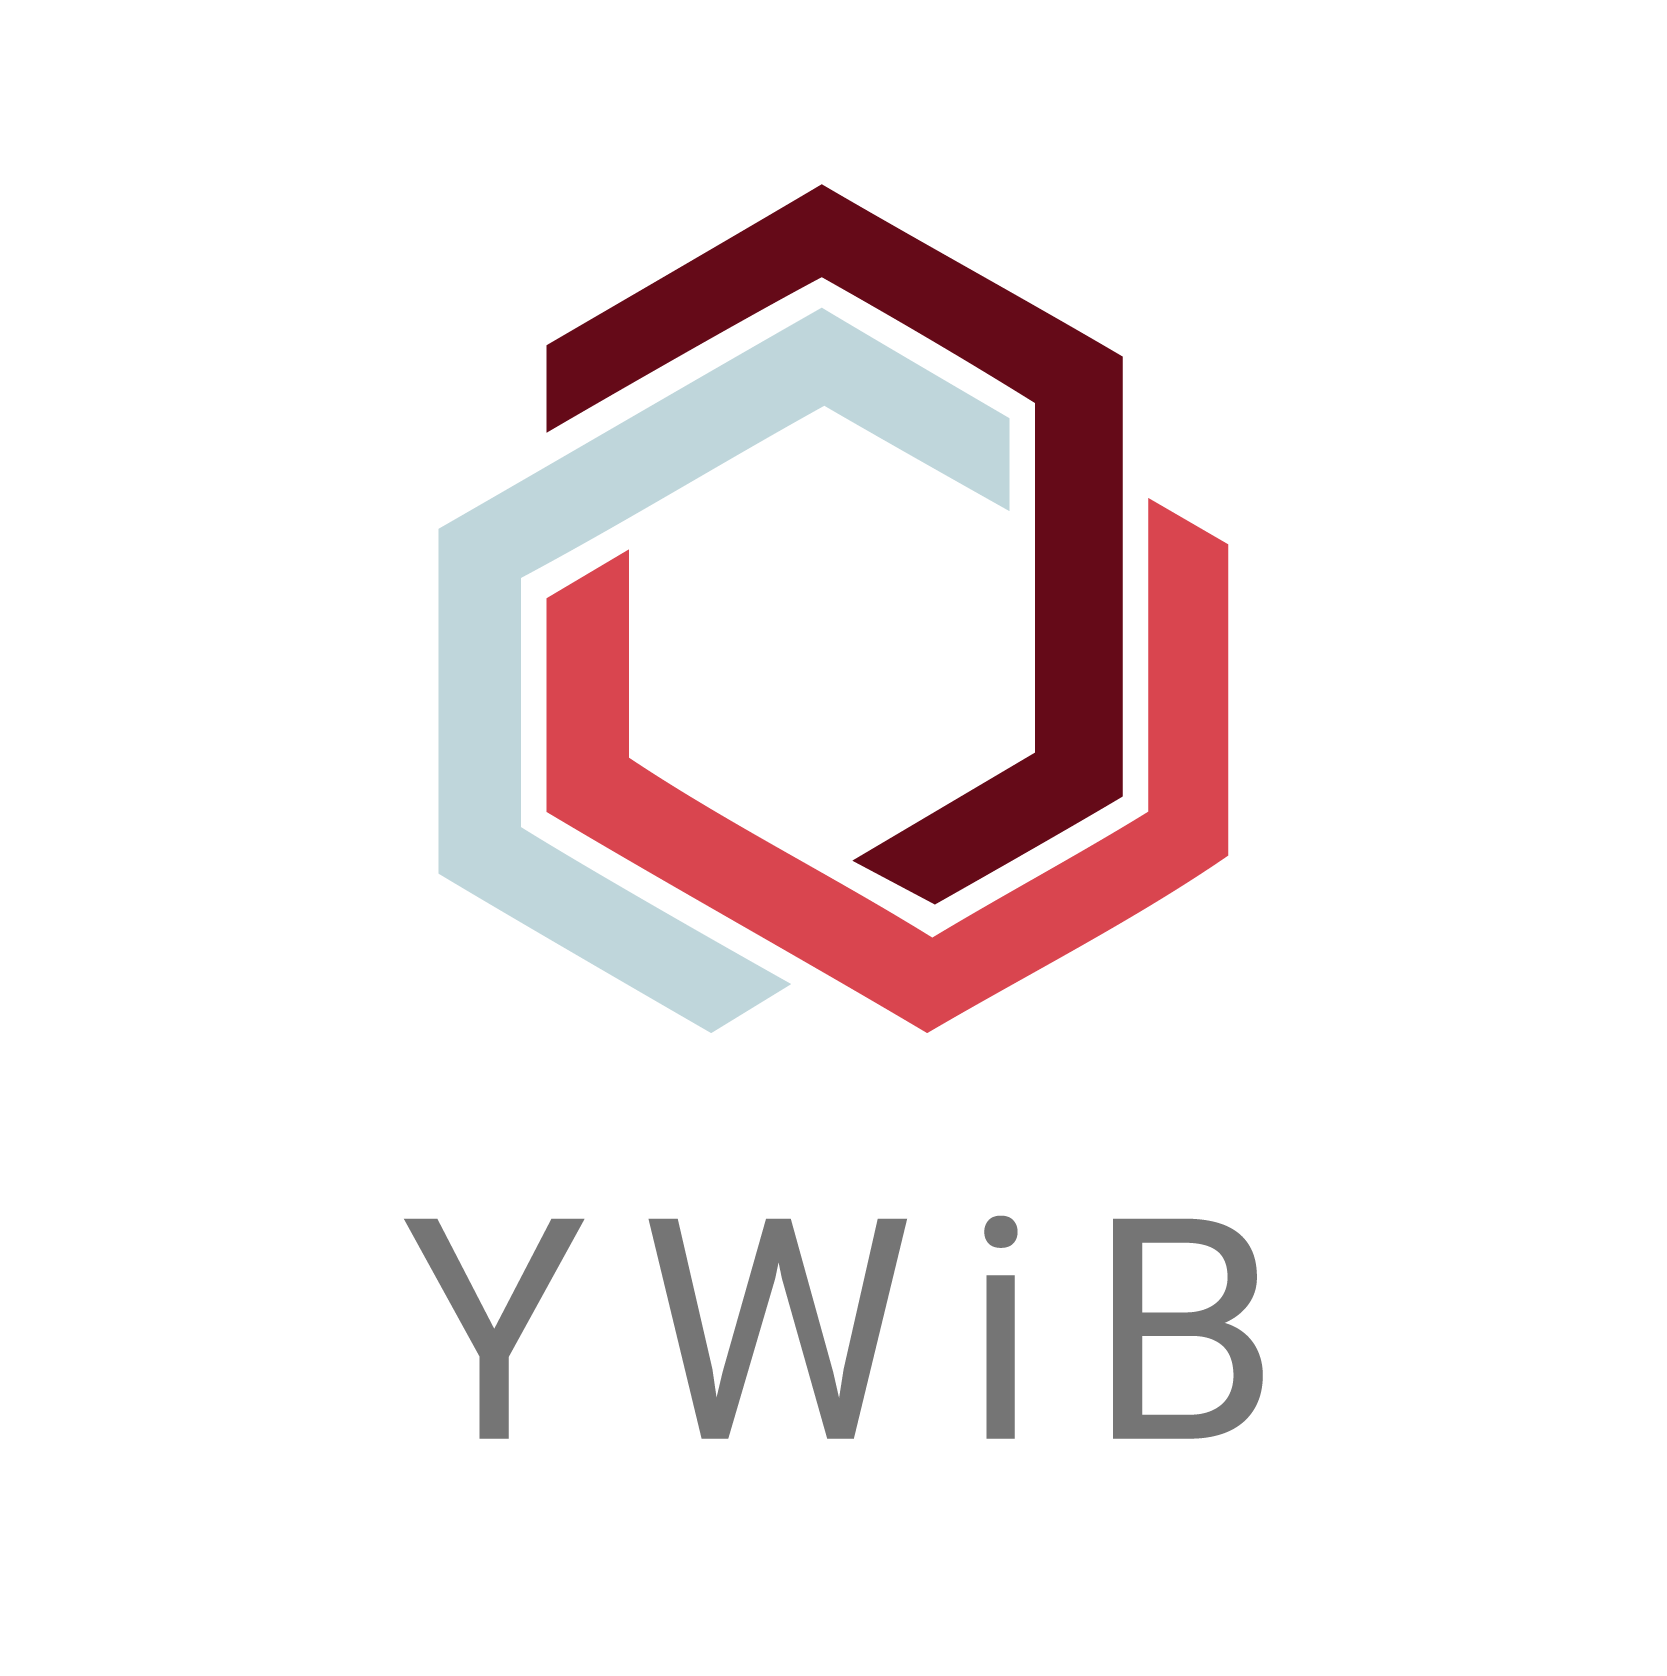 YWiB- Young Women in Business